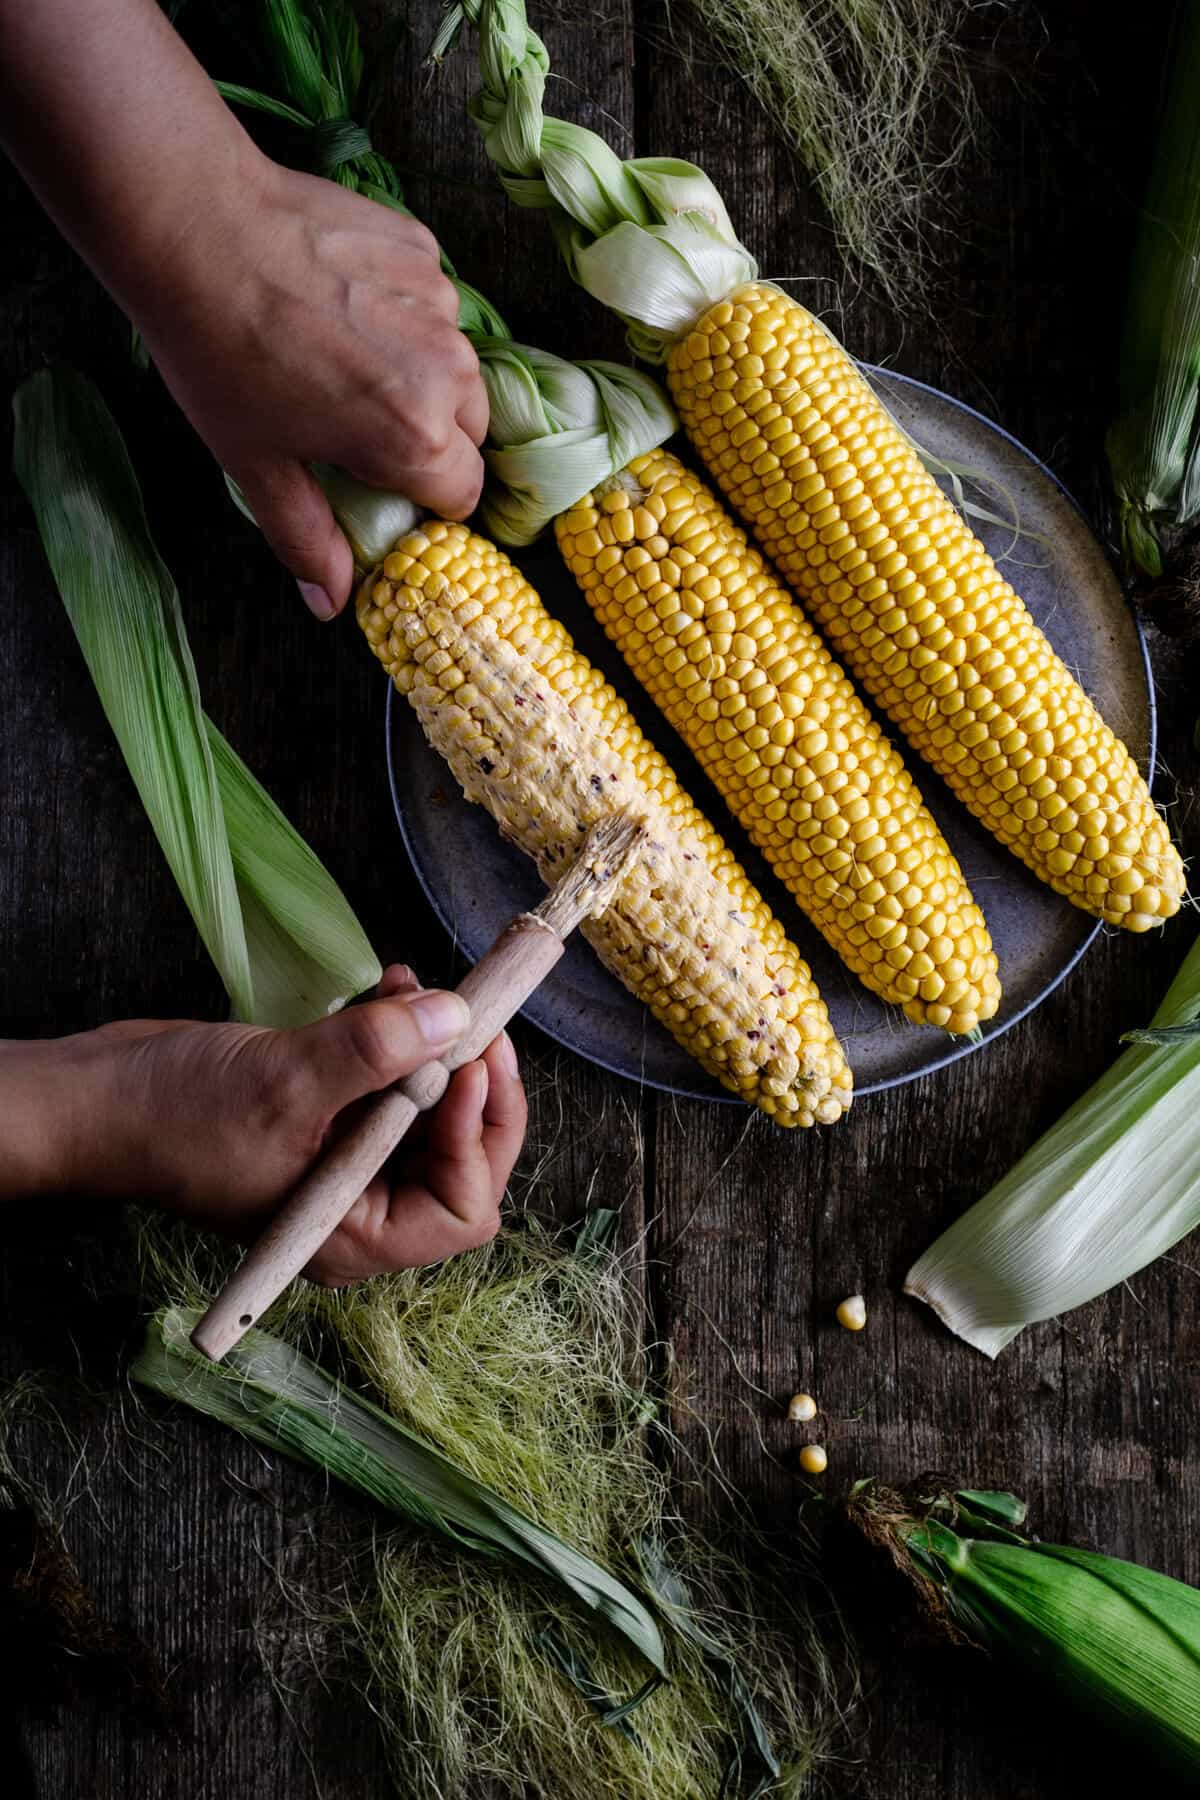 Spreading chilli-infused butter on cobs of corn with pastry brush